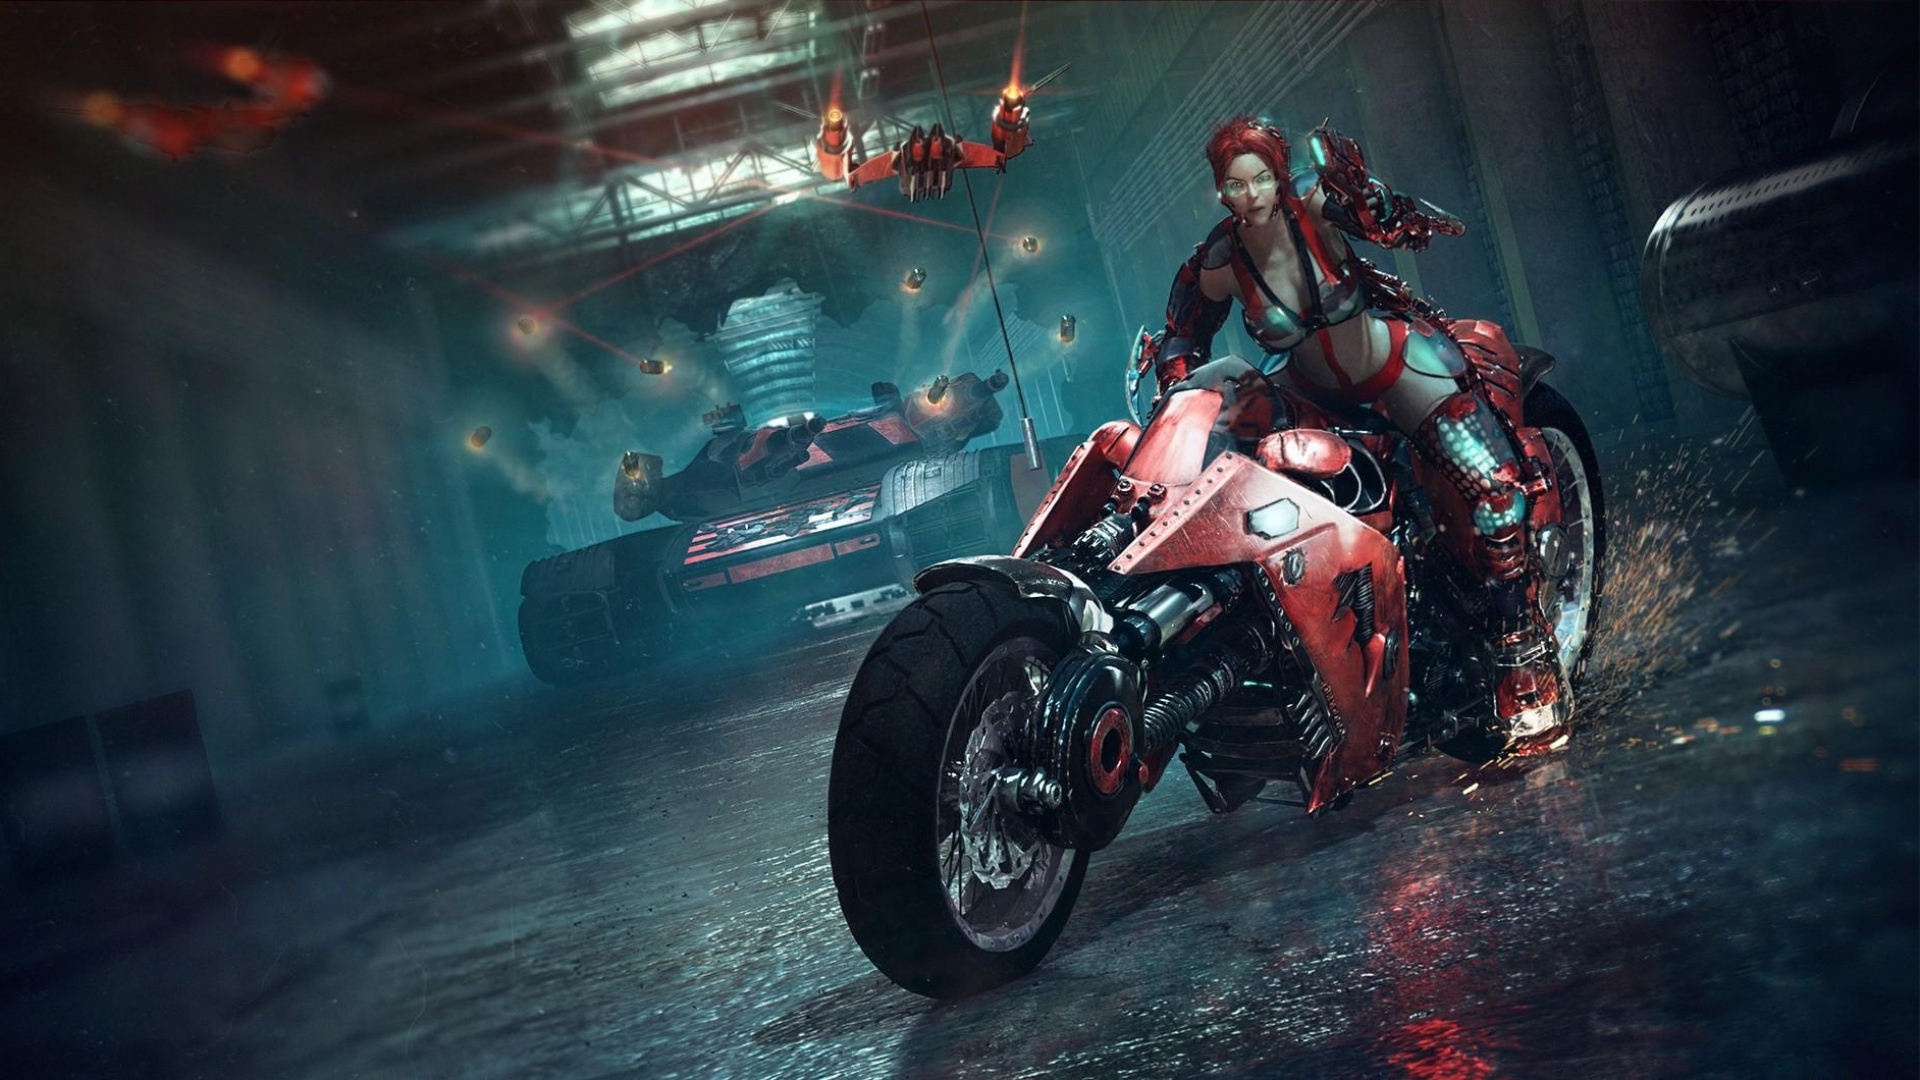 Get The Latest Bike Girl Dress News Pictures And Videos Learn All About From Wallpapers4uorg Your Wallpaper Source